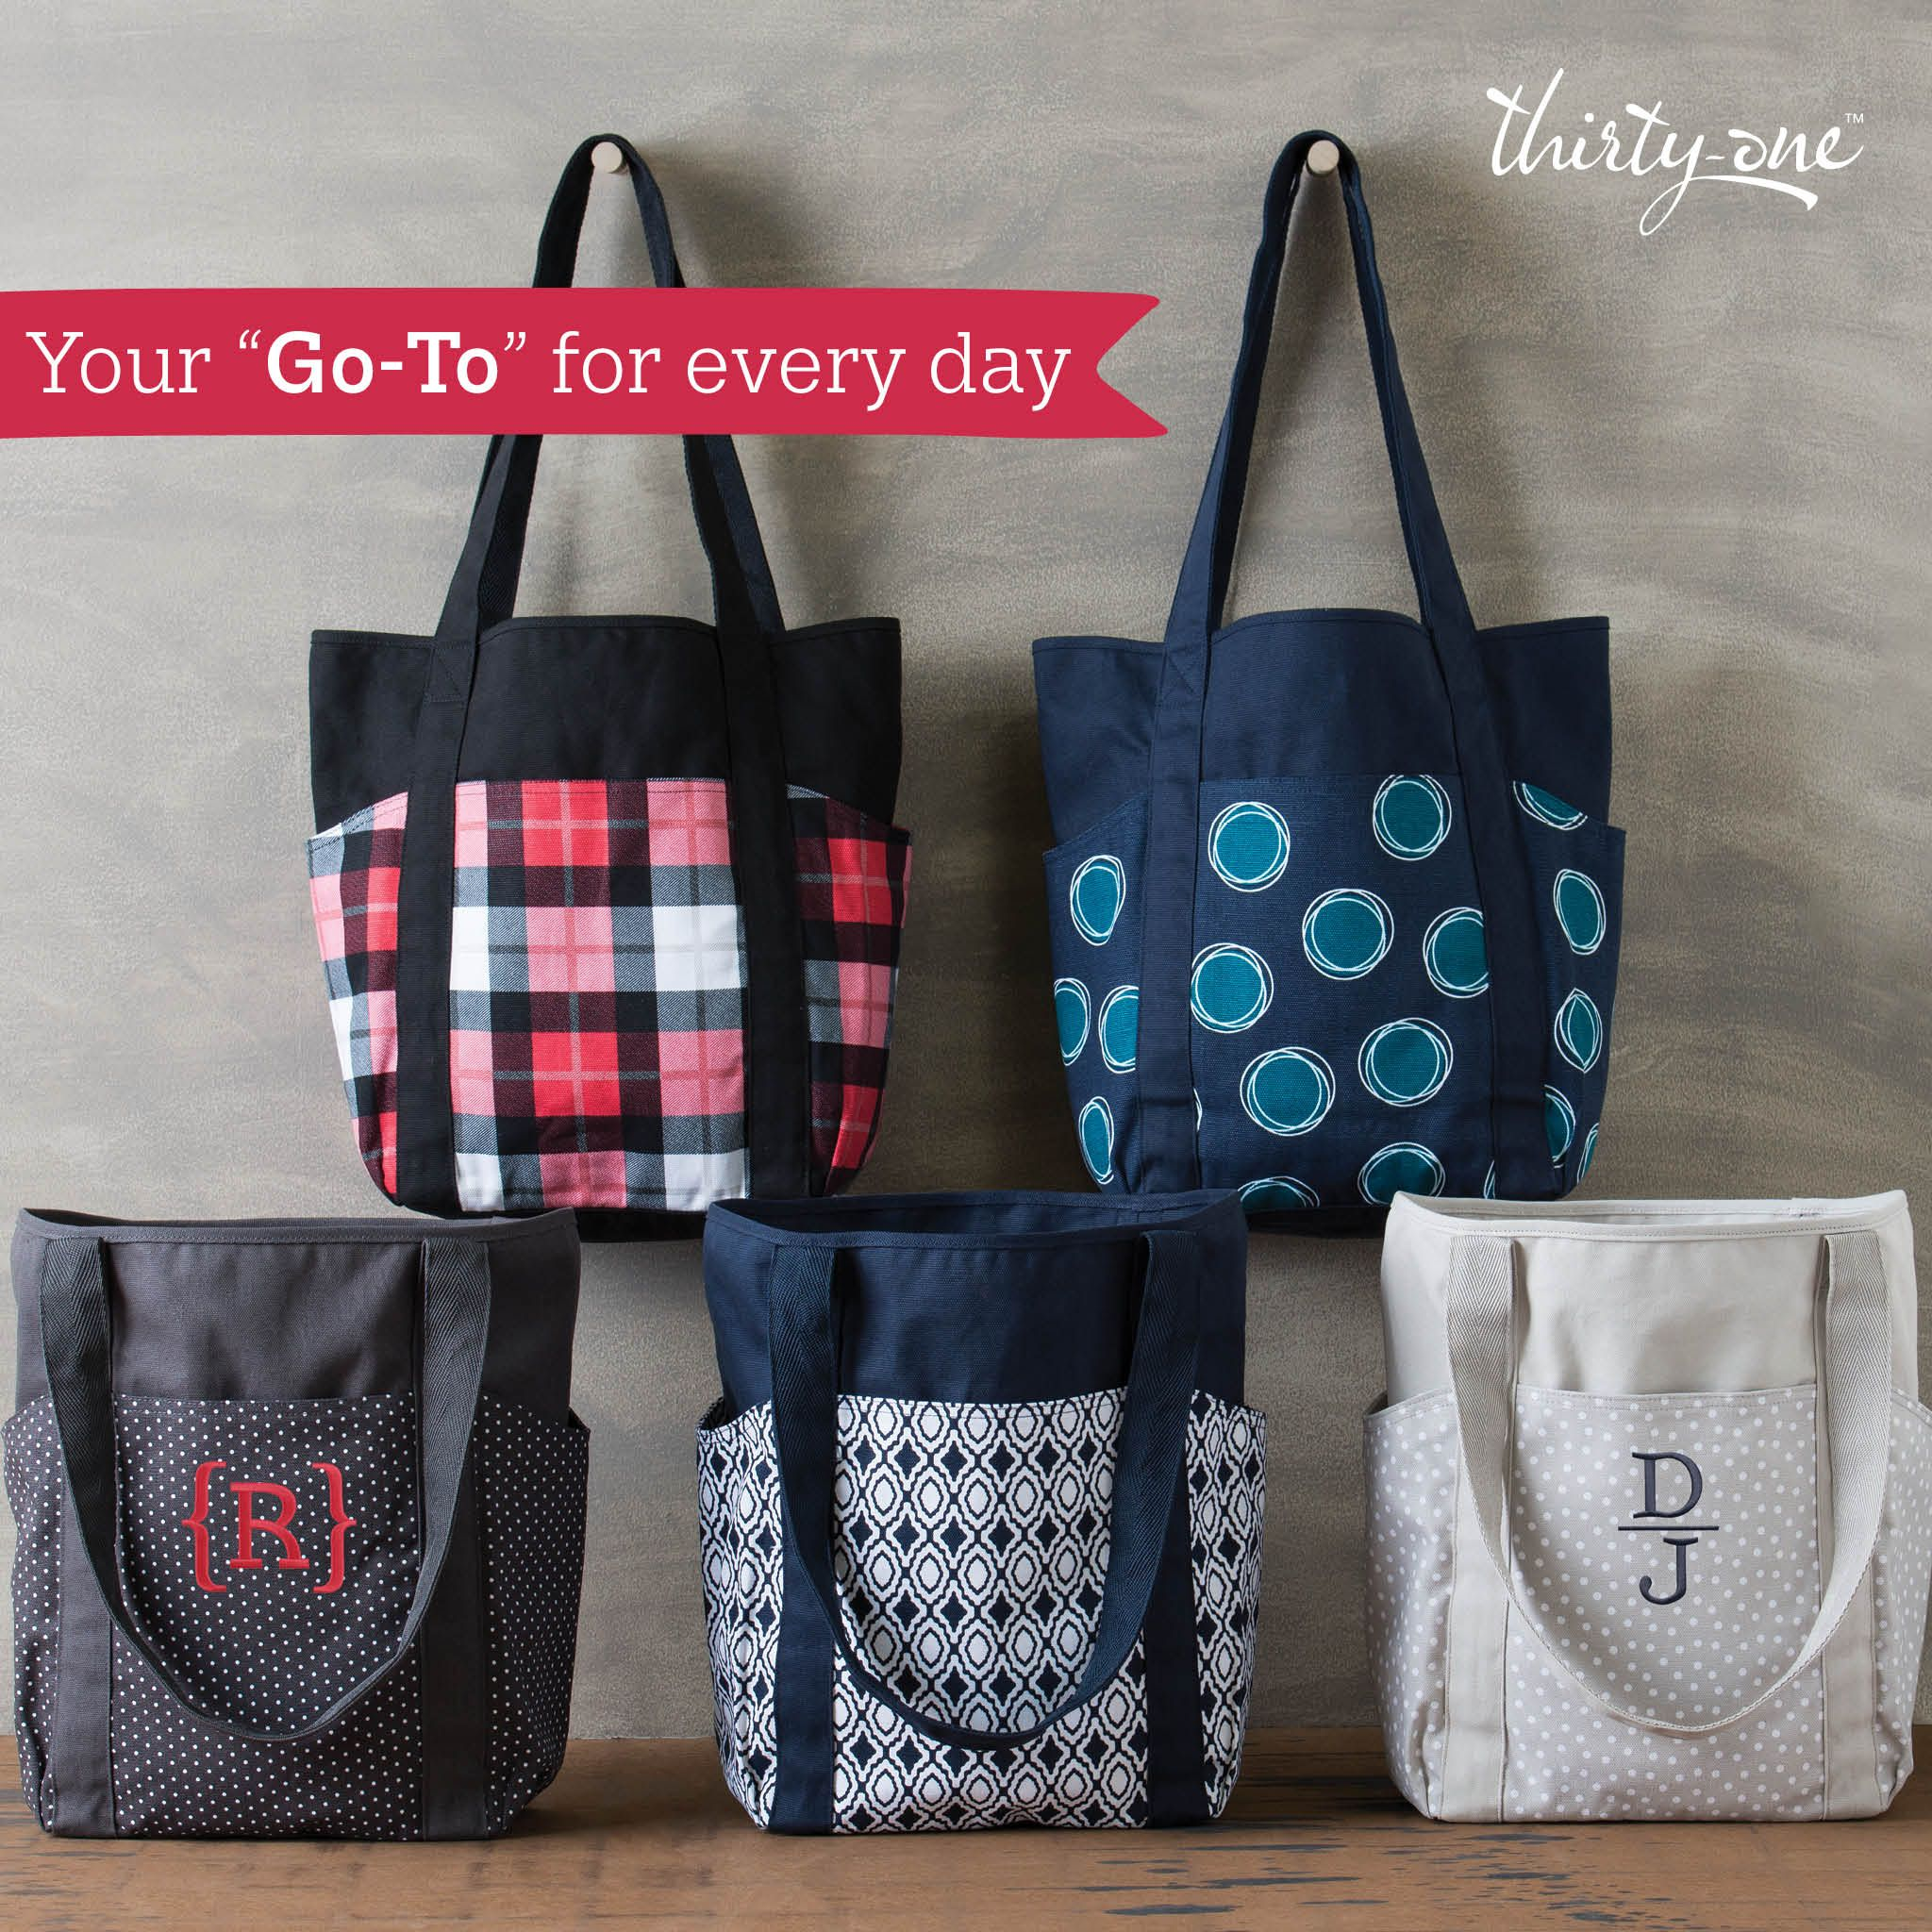 Thirty one november customer special 2014 - Thirty One Gifts Thirty One Consultants Ontario Manitoba Thirty One Canada